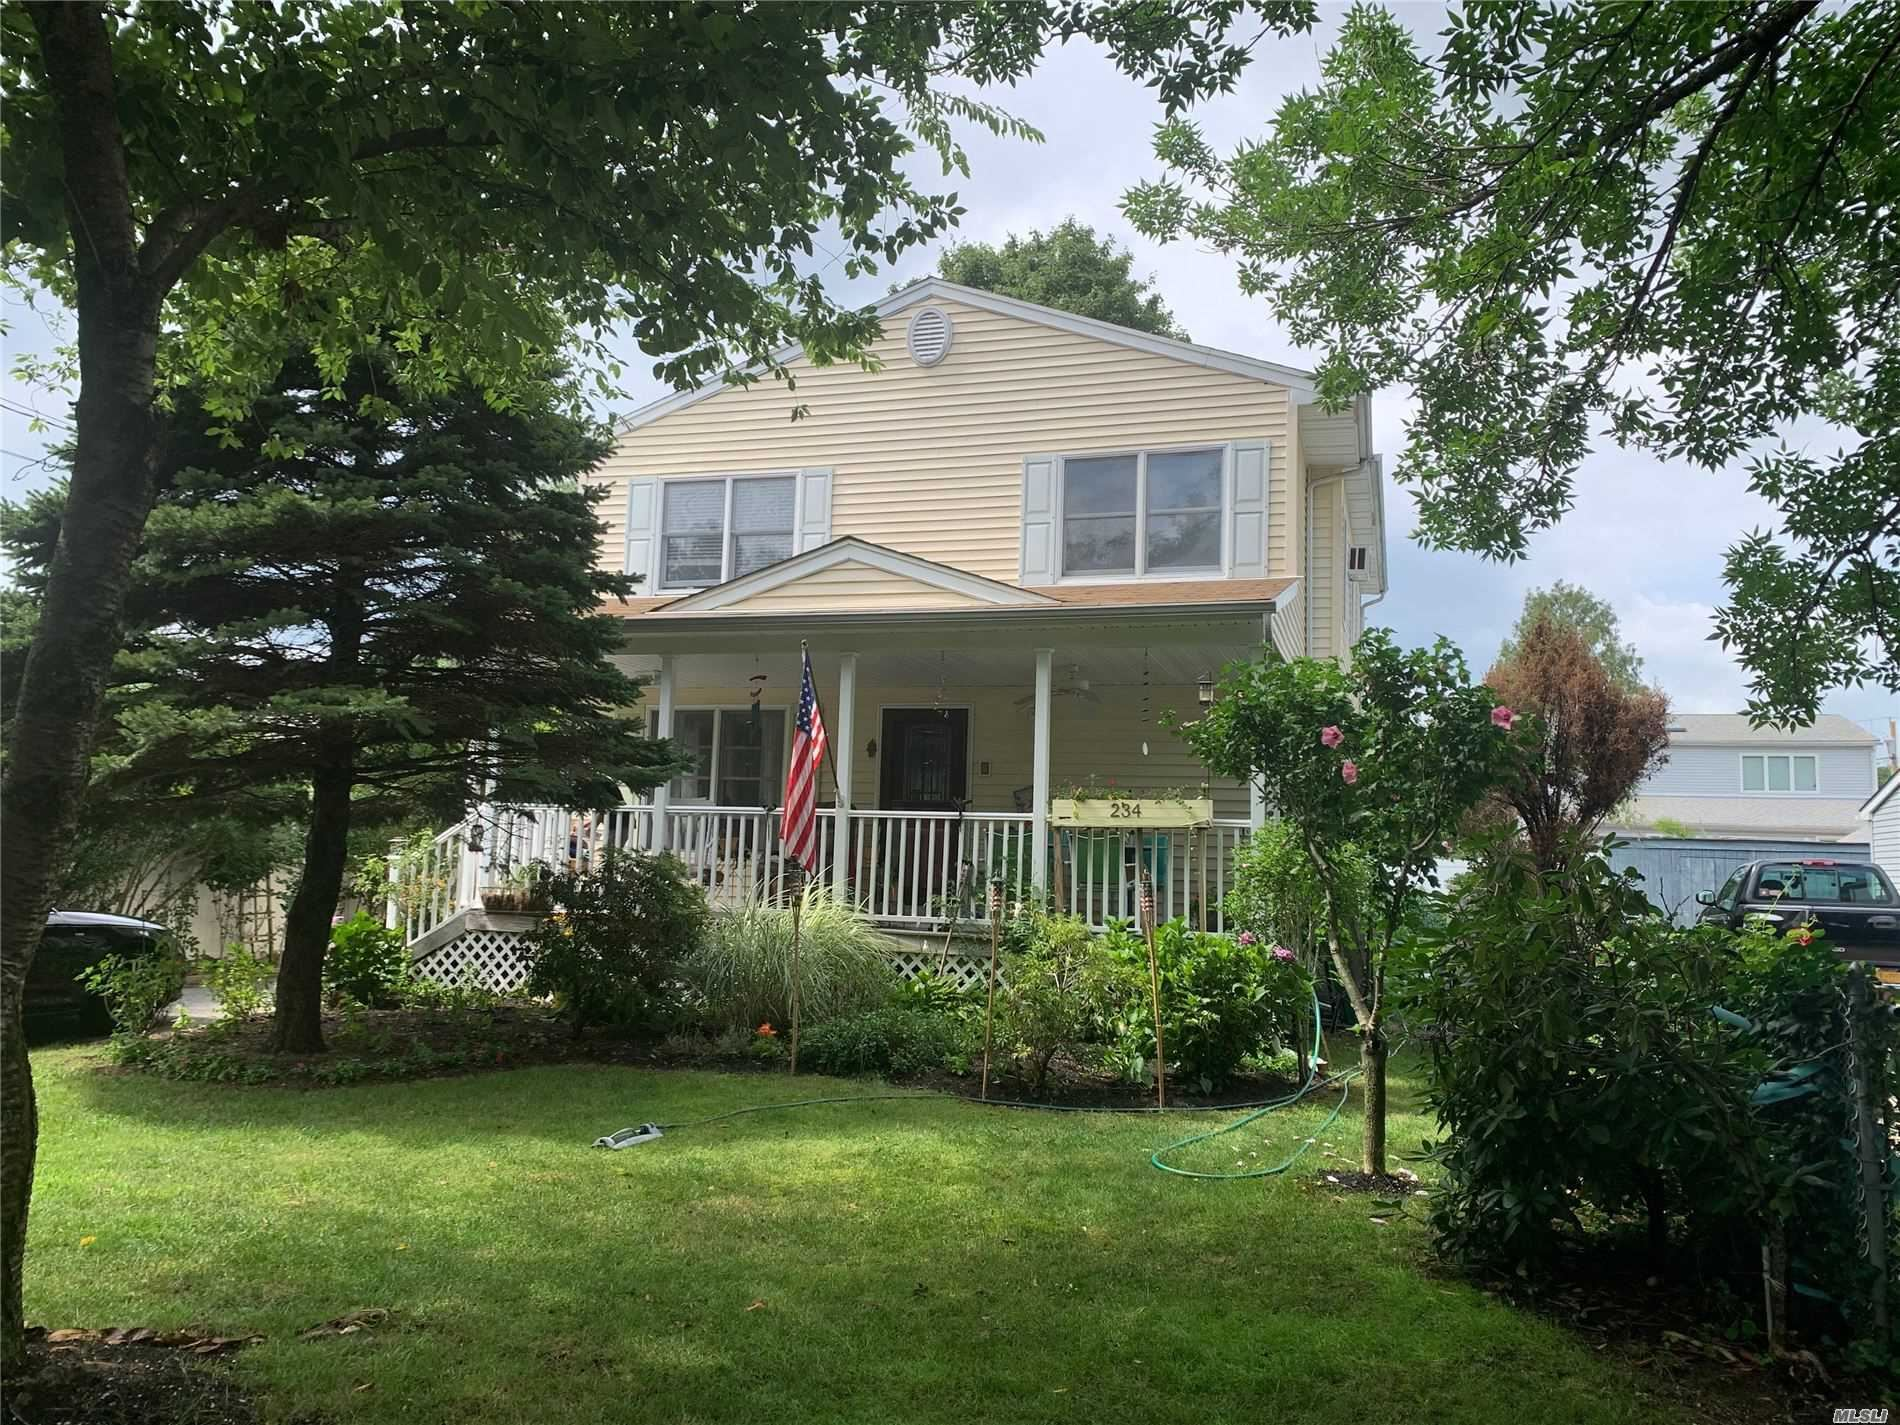 234 10th Street, Hicksville, NY 11801 - MLS#: 3239241